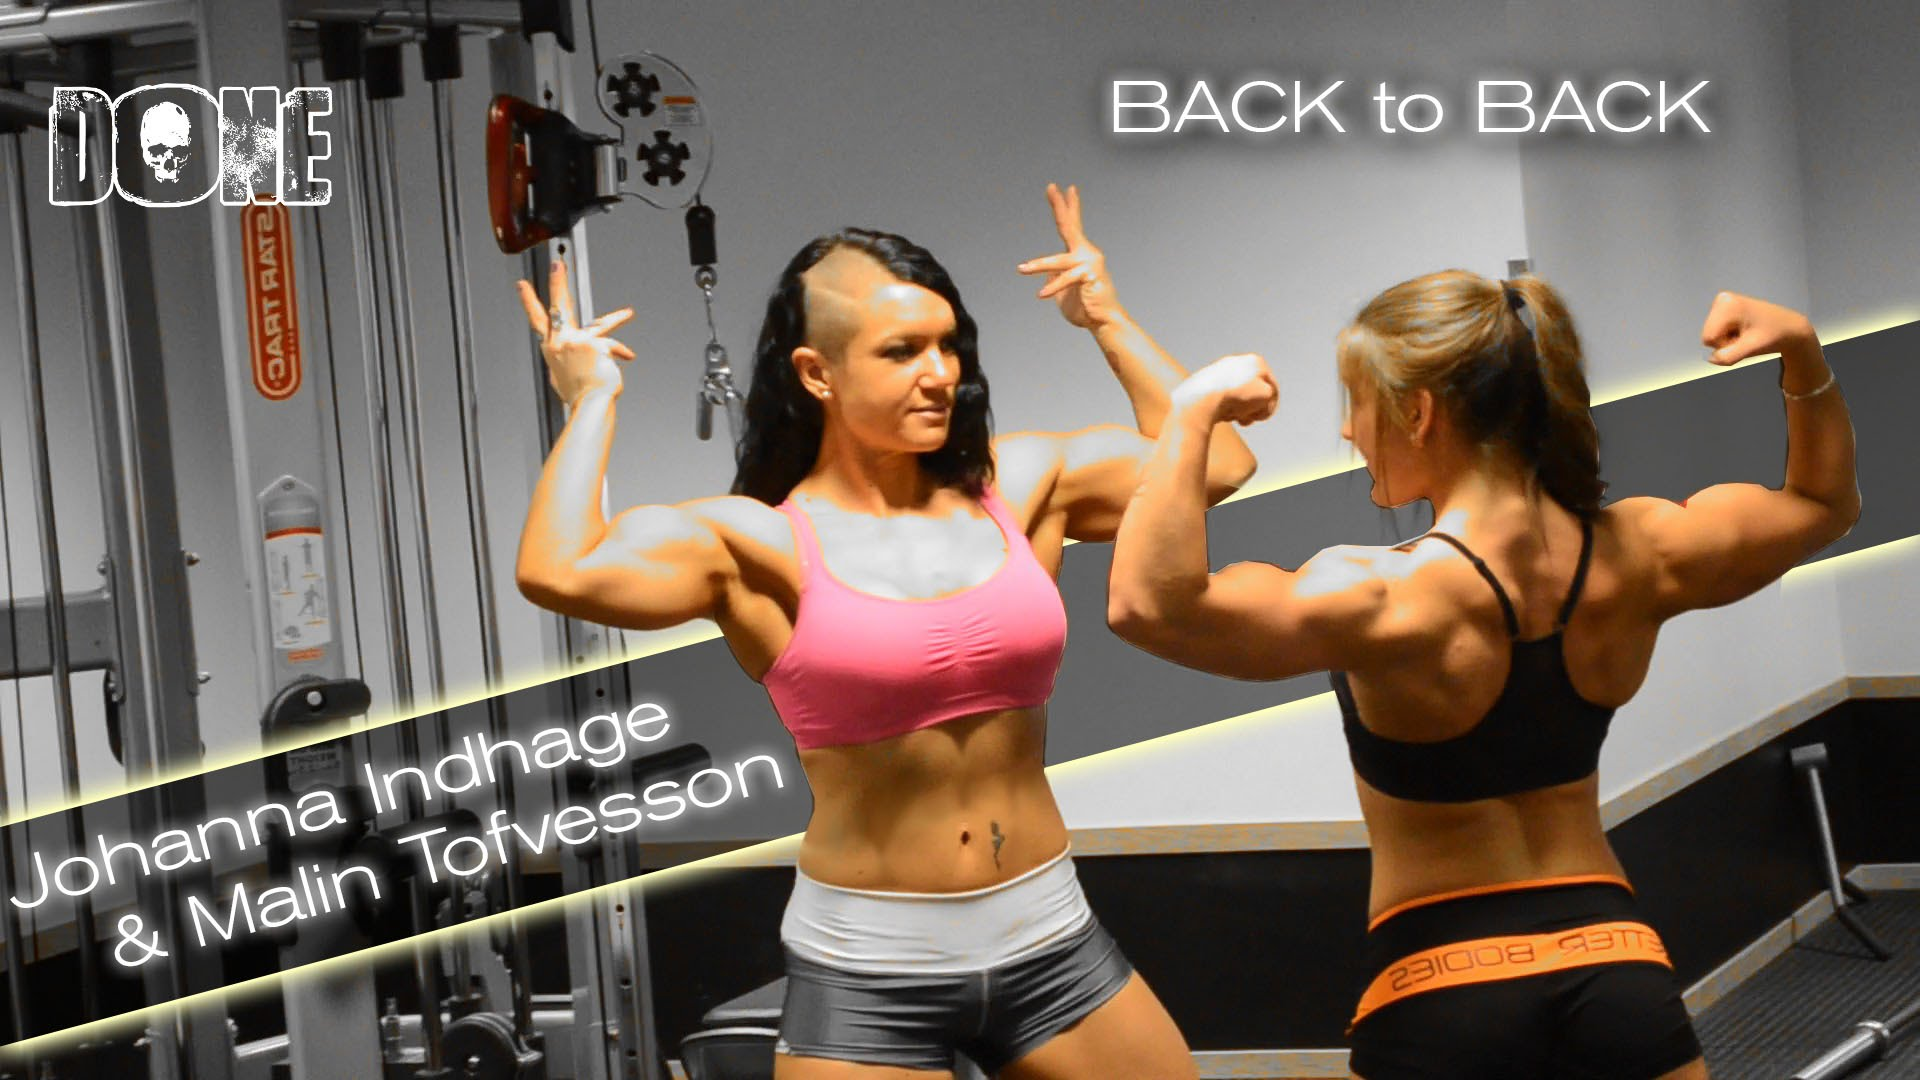 Johanna Indhage & Malin Tofvesson – Back Workout